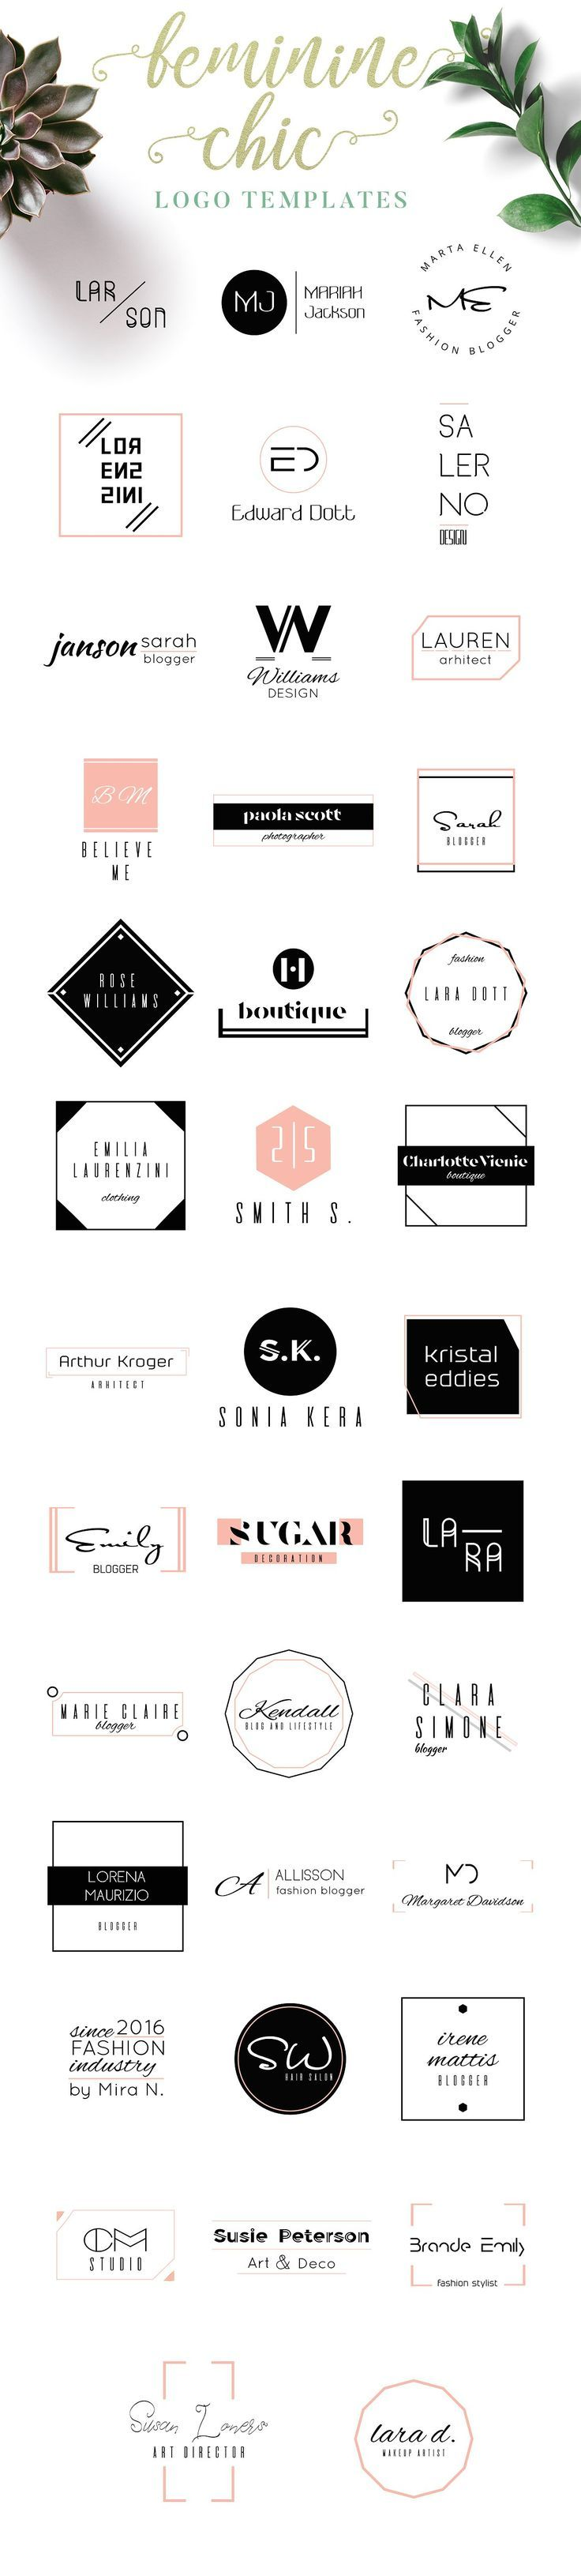 Feminine Chic Logo Templates by IsikChic on @creativemarket